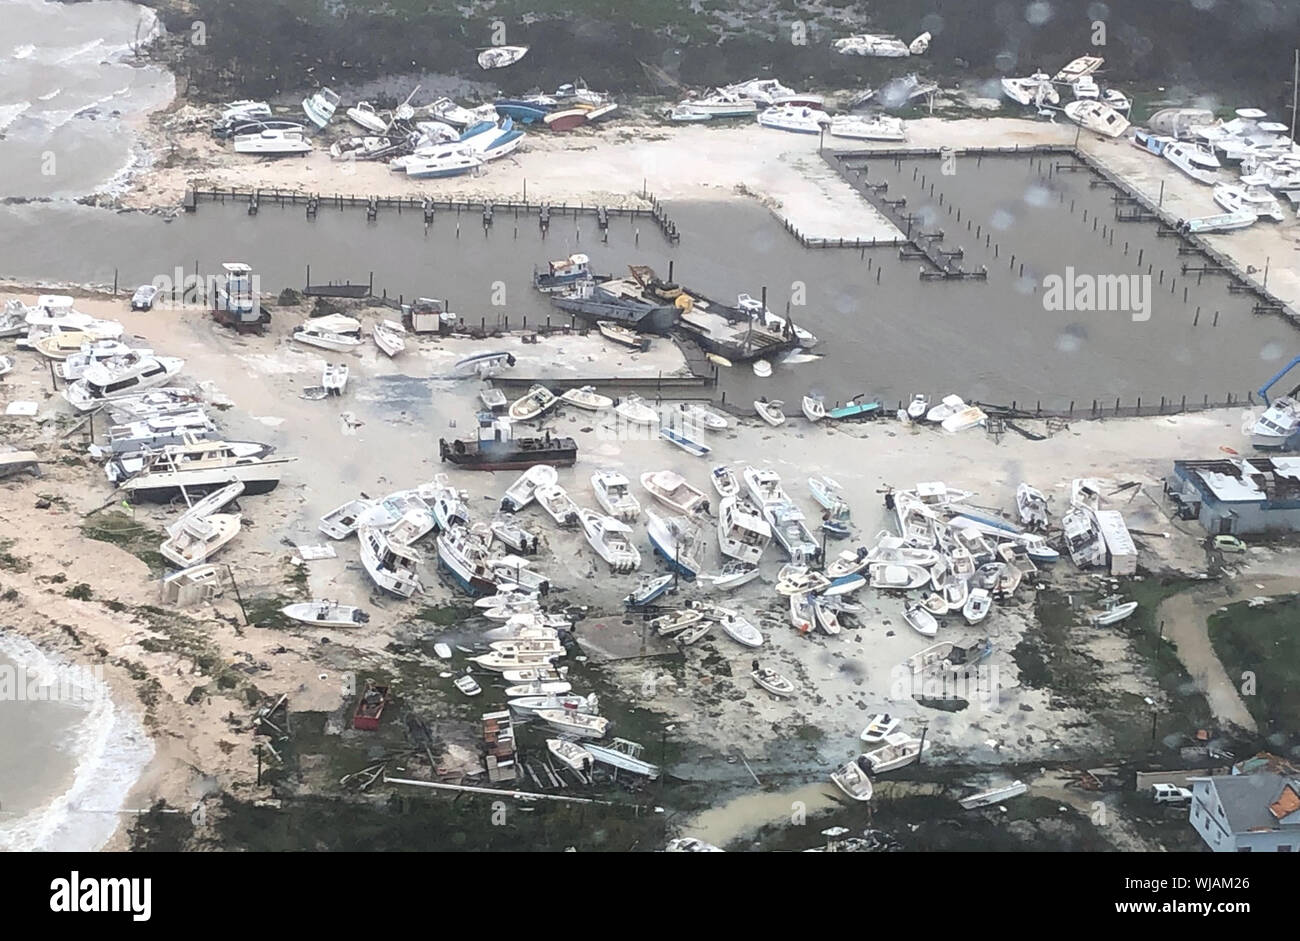 Bahamas. 3rd Sep 2019. U.S Coast Guard Air Station Clearwater forward-deployed four MH-60 Jayhawk helicopter crews in support of search and rescue and humanitarian aid in the Bahamas on September 2, 2019. As Hurricane Dorian makes its way across the Bahamas, the Coast Guard is ready to assist as needed. Photo by U.S. Coast Guard/UPI Credit: UPI/Alamy Live News Stock Photo